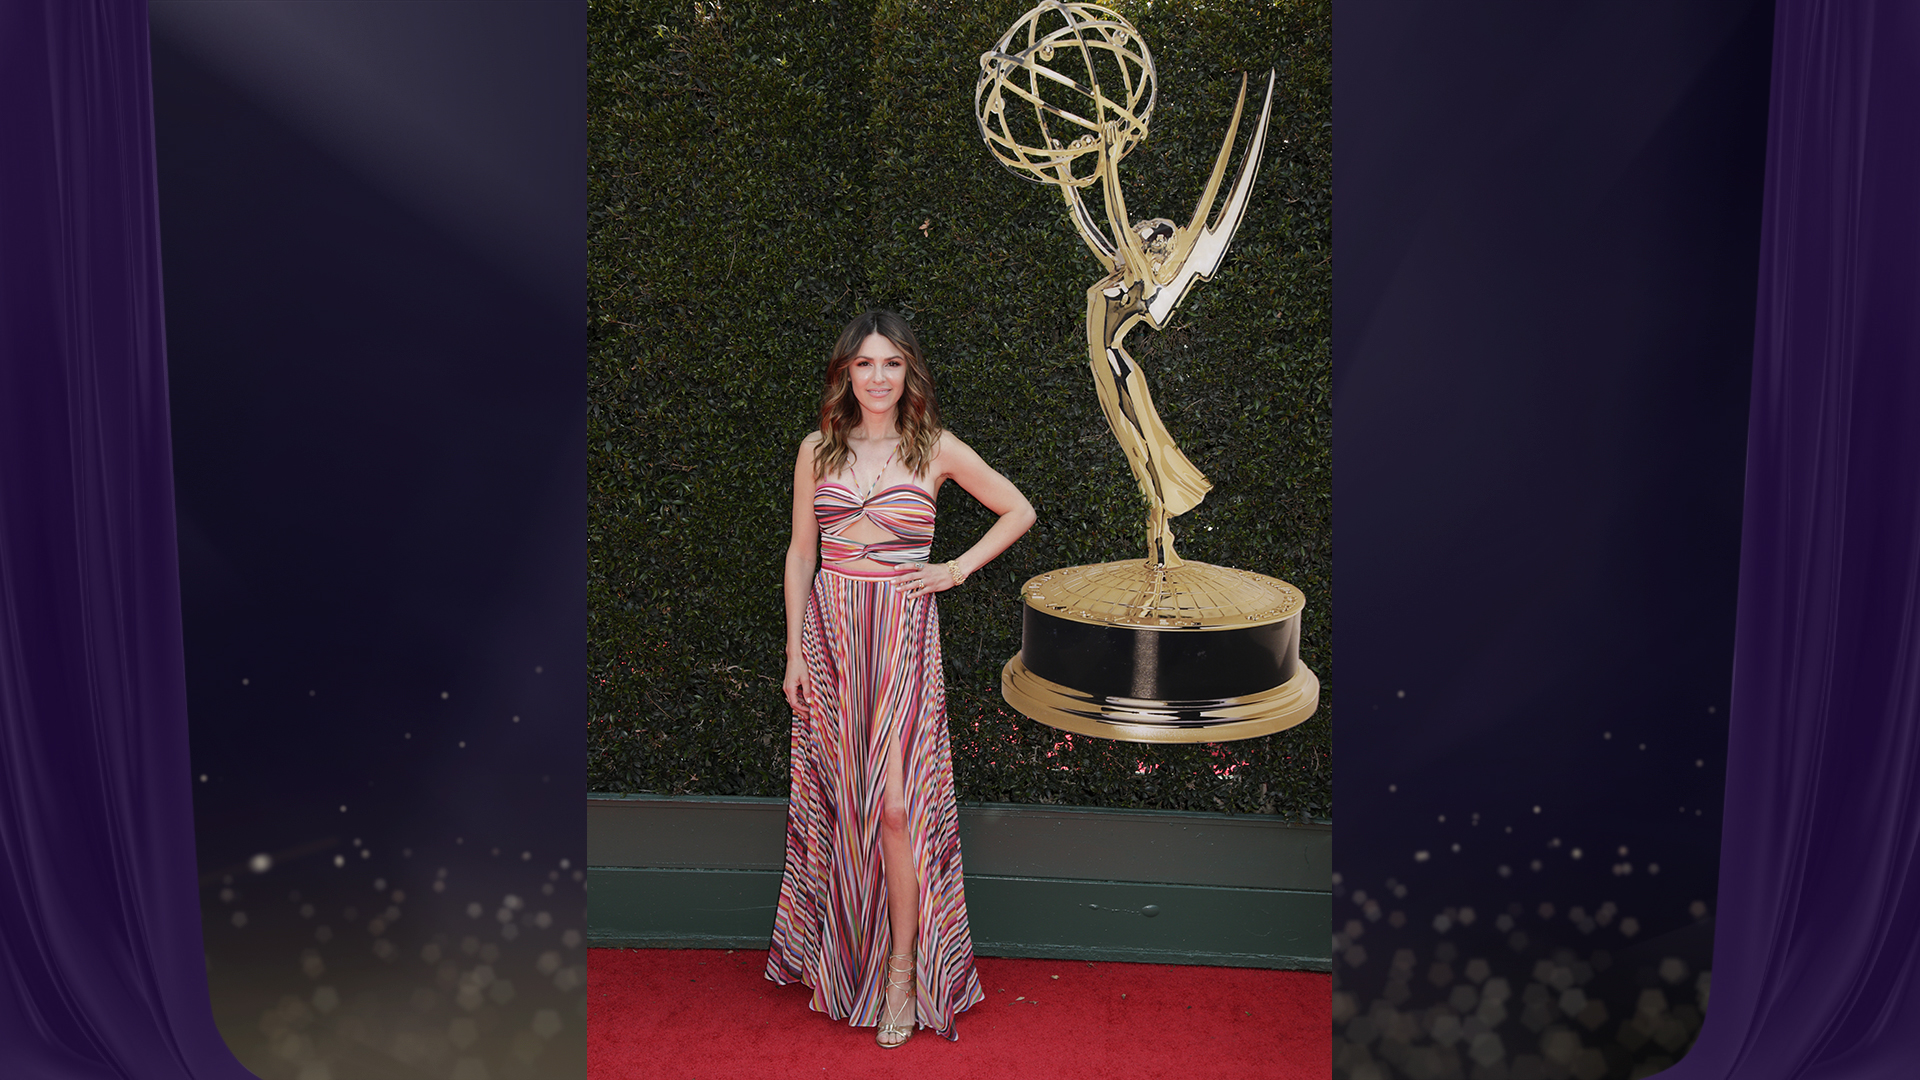 Elizabeth Hendrickson, who's nominated for Outstanding Supporting Actress in a Drama Series for her work on The Young and the Restless, shows some leg in her striped halter dress with cut-outs.